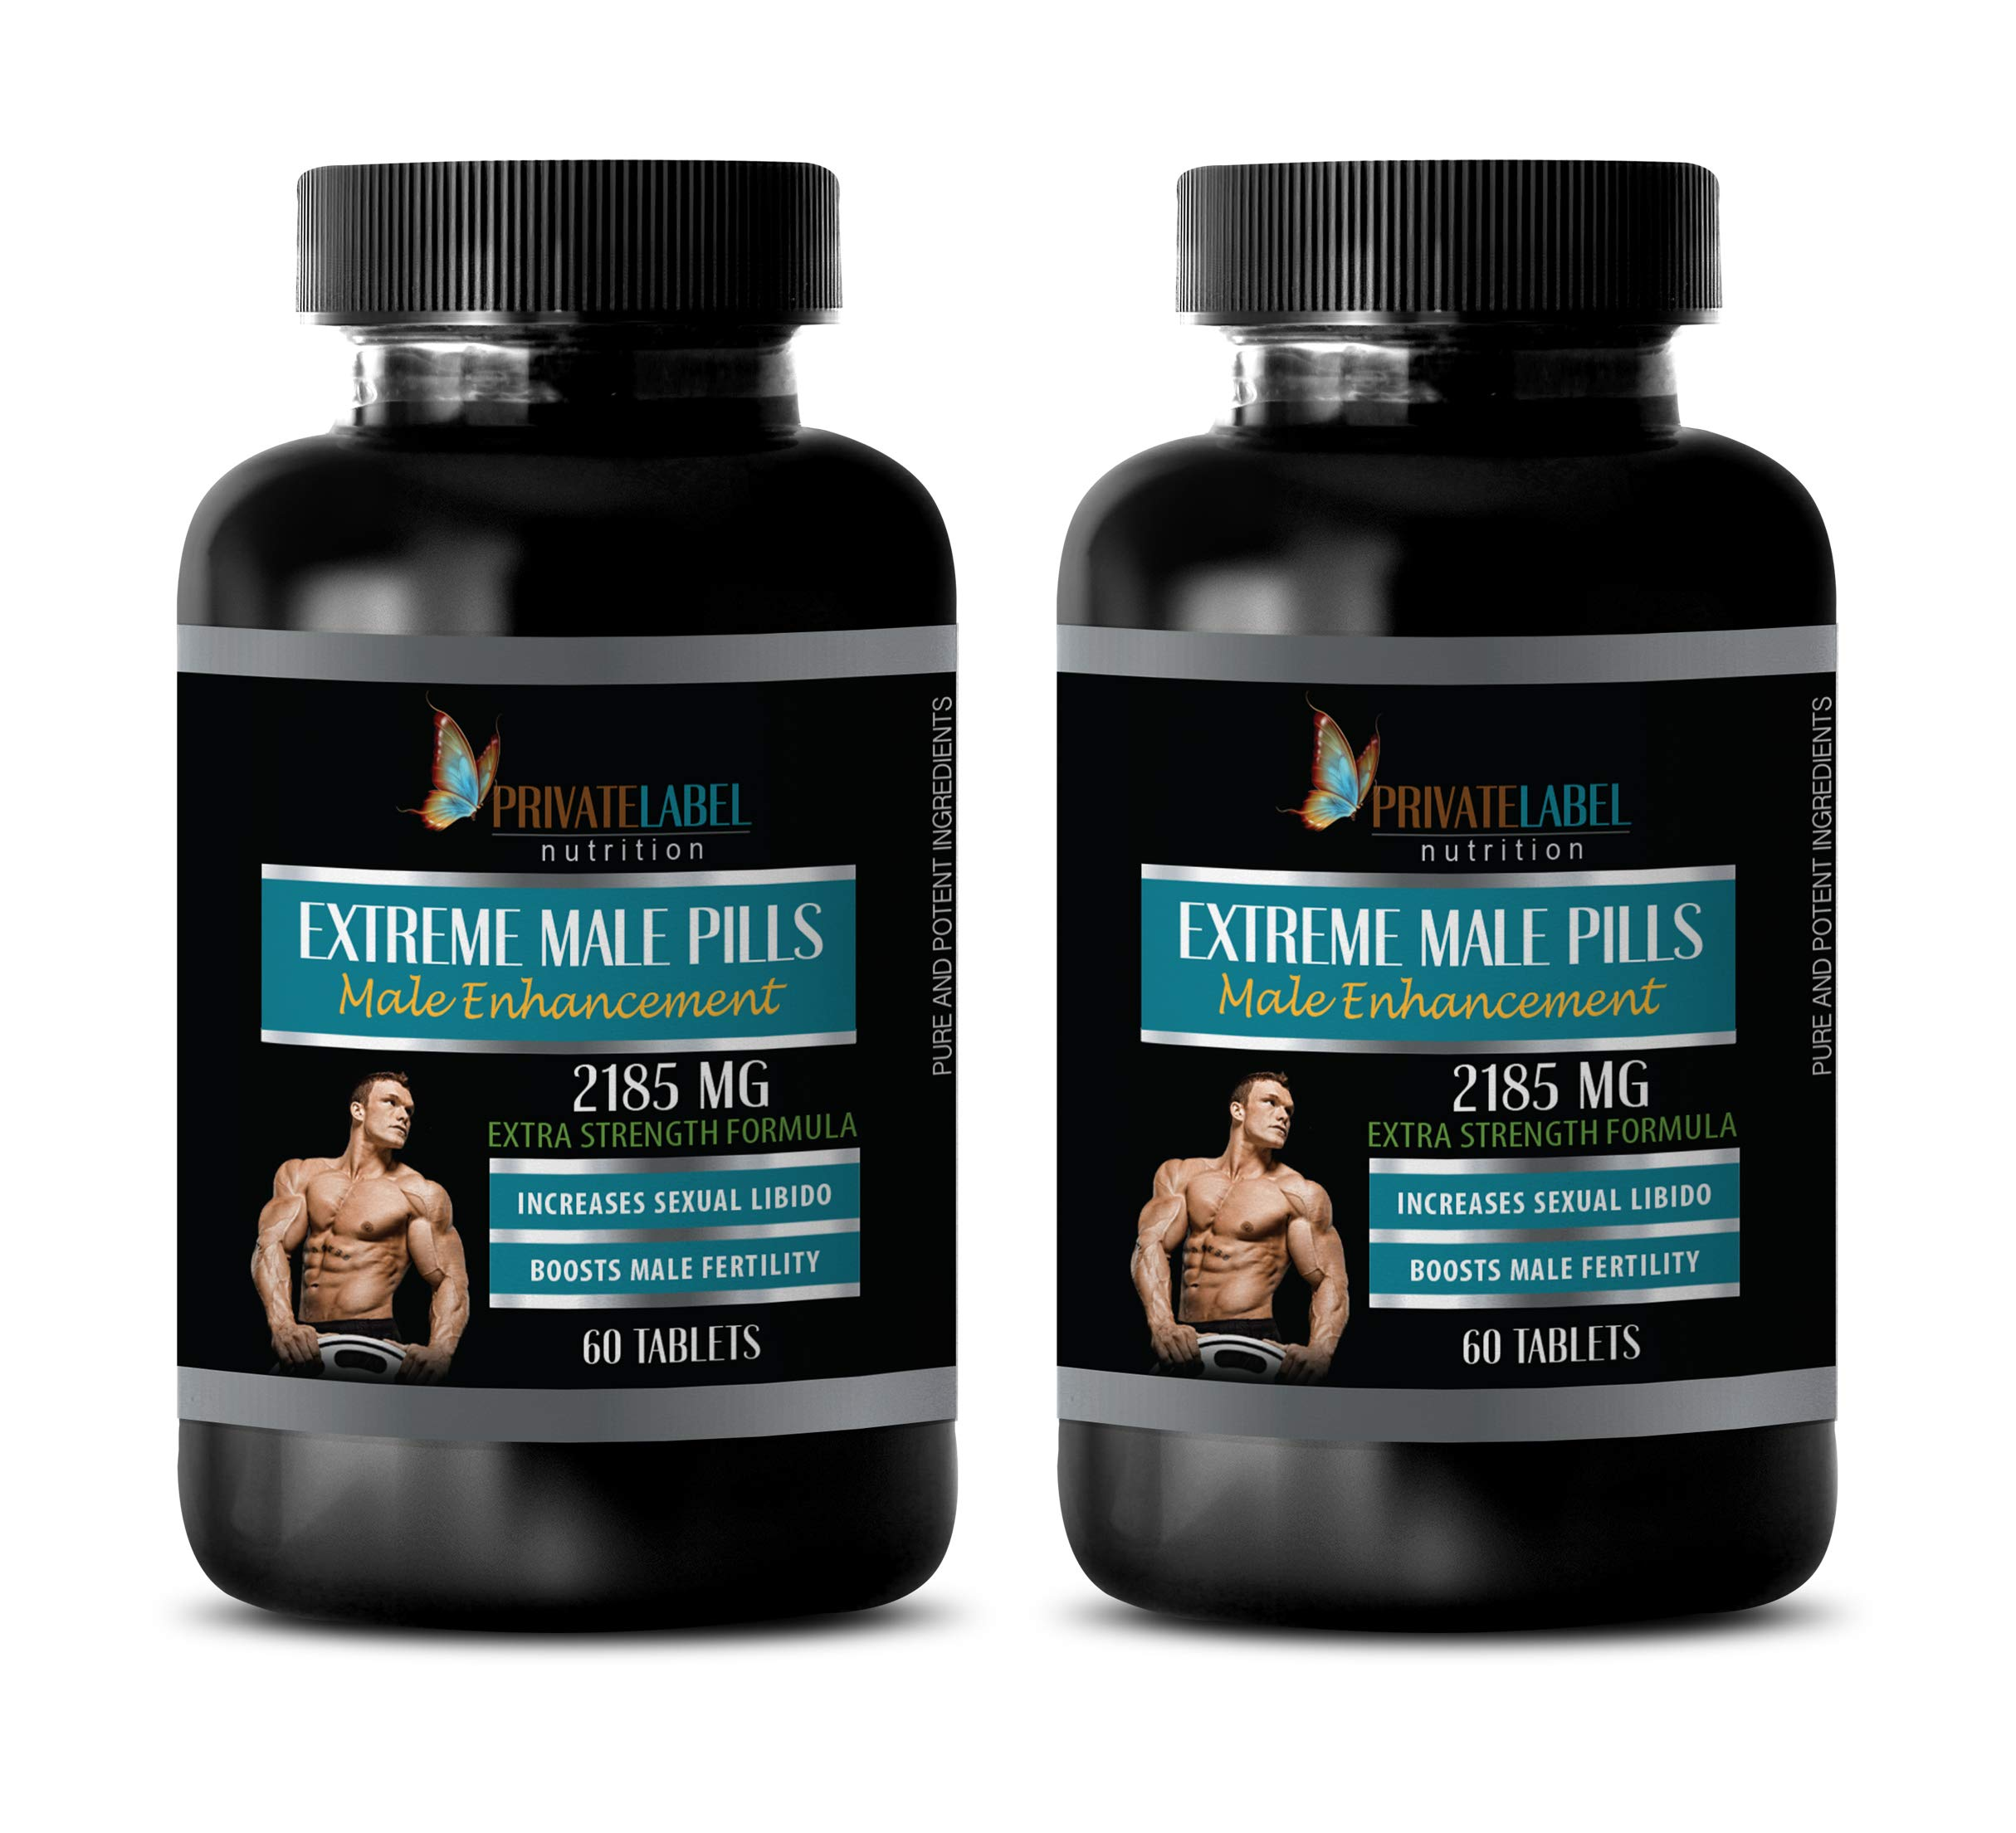 Male libido Booster Natural - Extreme Male Pills 2185 Mg - Extra Strength Formula - tongkat ali eurycoma longifolia - 2 Bottles 120 Tablets